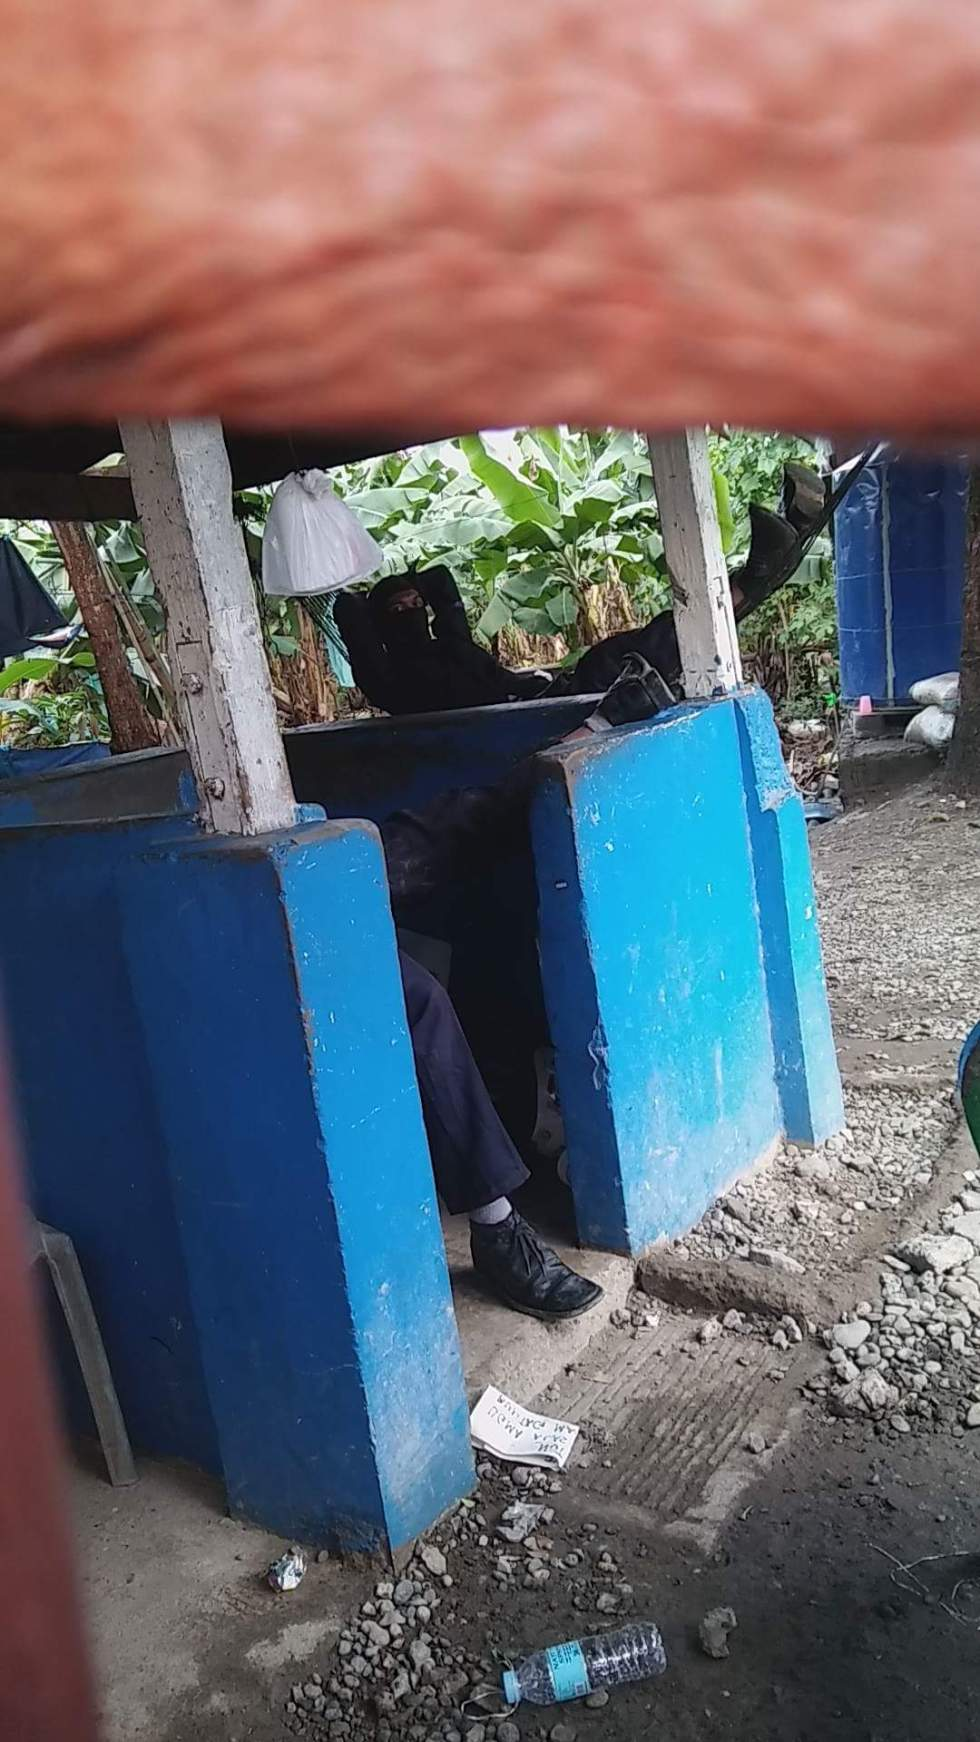 Security guards inside now occupy the 145-hectare land (photo by Radyo ni Juan Tagum)